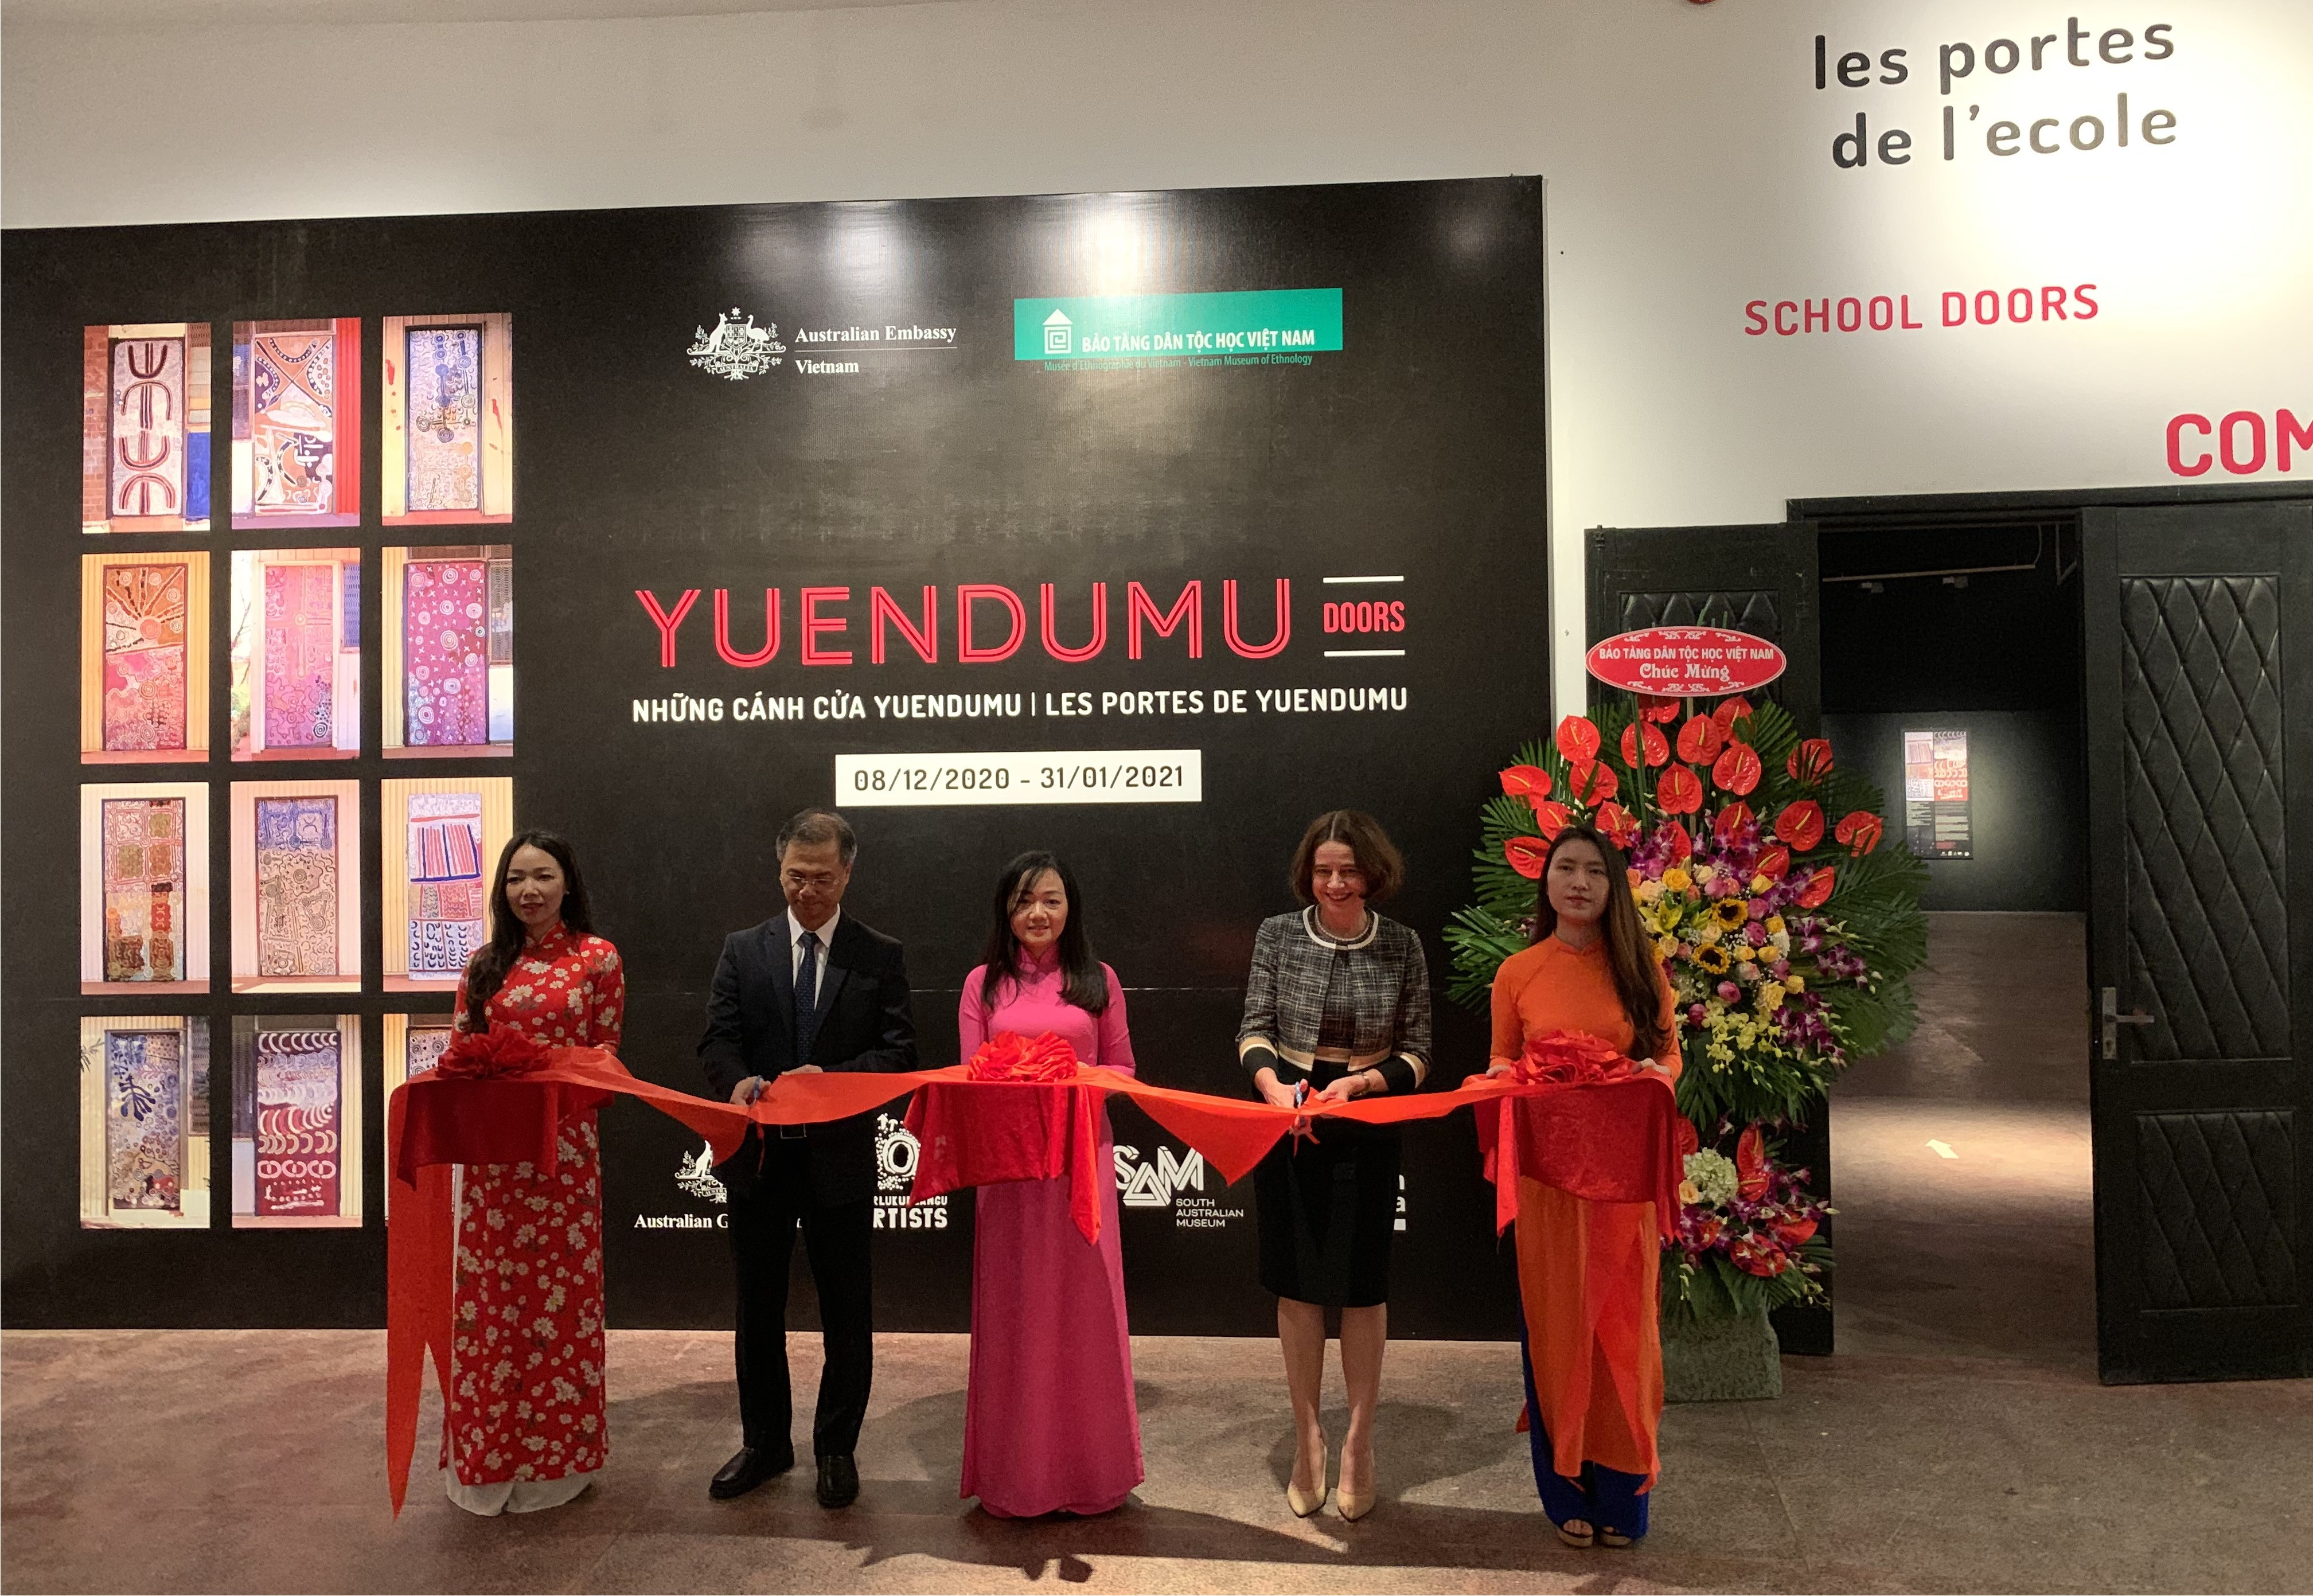 Australian Ambassador to Vietnam Robyn Mudie (2nd from right) and Dang Xuan Thanh, vice president of Vietnam Academy of Social Science, Director of the Vietnam Museum of Ethnology (2nd from left) cut the ribbon to inaugurate the Yuendumu Doors exhibition in hanoi on December 8, 2020. Photo provided by the Australian Embassy in Hanoi